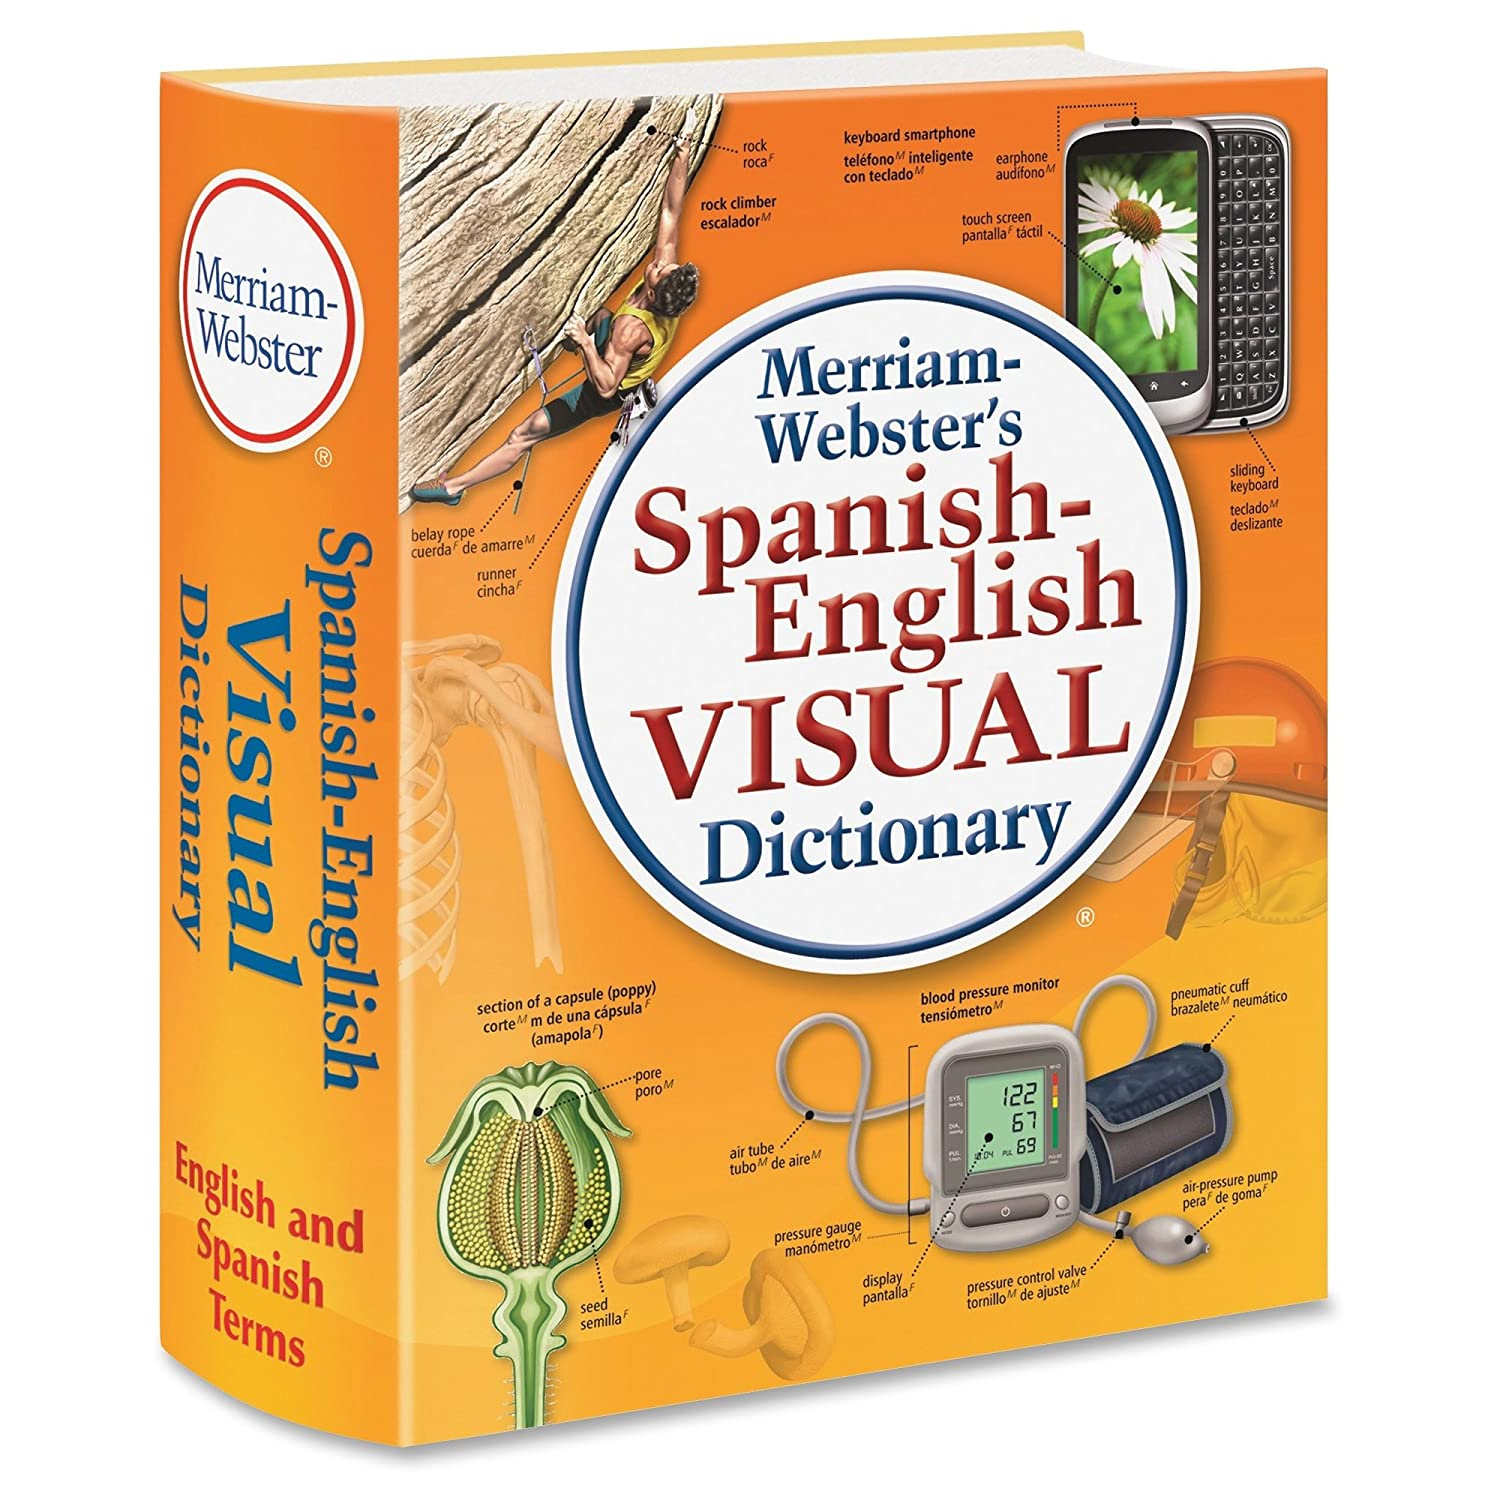 世界有名な merriam-webster B01B94KCOO merriam-webster 's 's spanish-englishビジュアル辞書 B01B94KCOO, 建材と住設のShop SZ:db7cc14f --- a0267596.xsph.ru